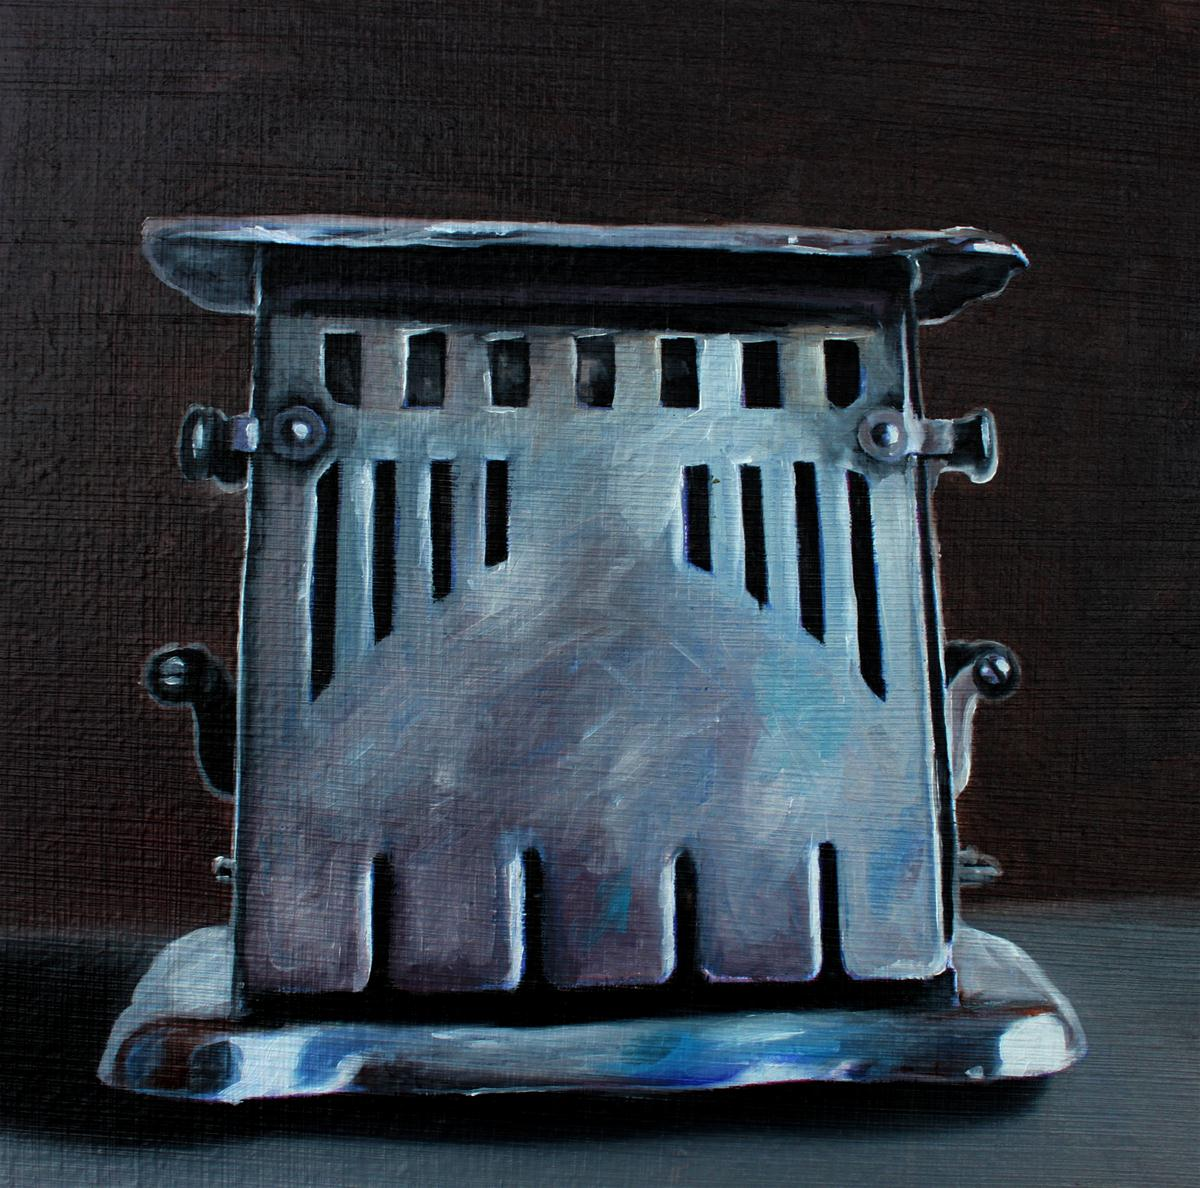 """Vintage Toaster"" original fine art by Lauren Pretorius"